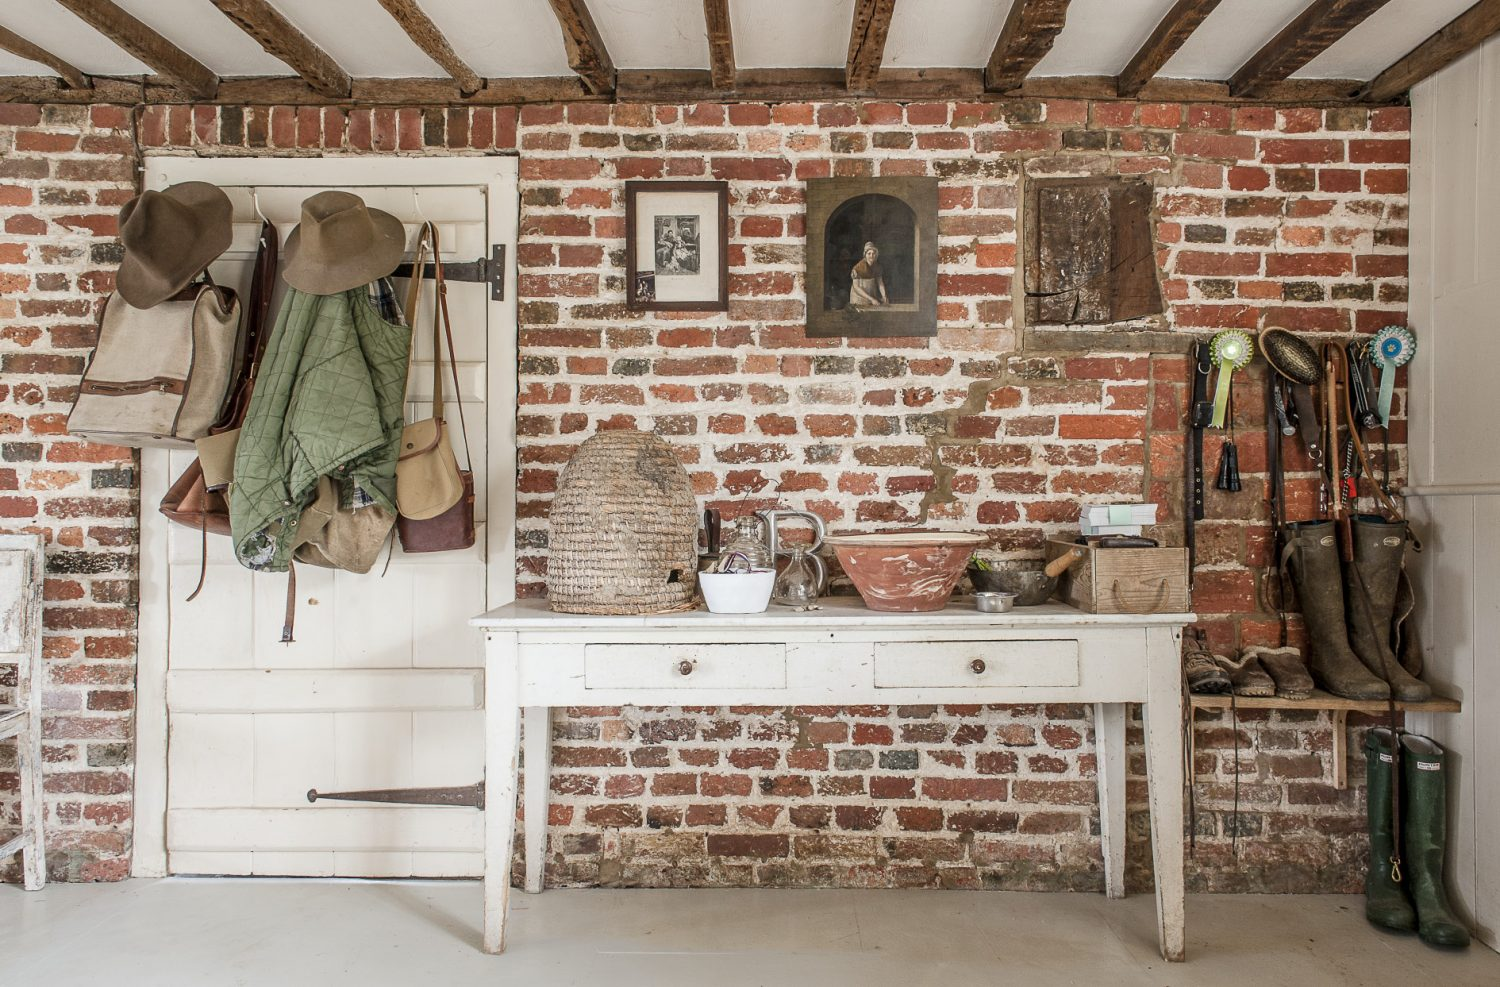 On the exposed brick wall opposite the Rayburn, interesting finds are grouped together on a table by the front door, including an old wicker beehive